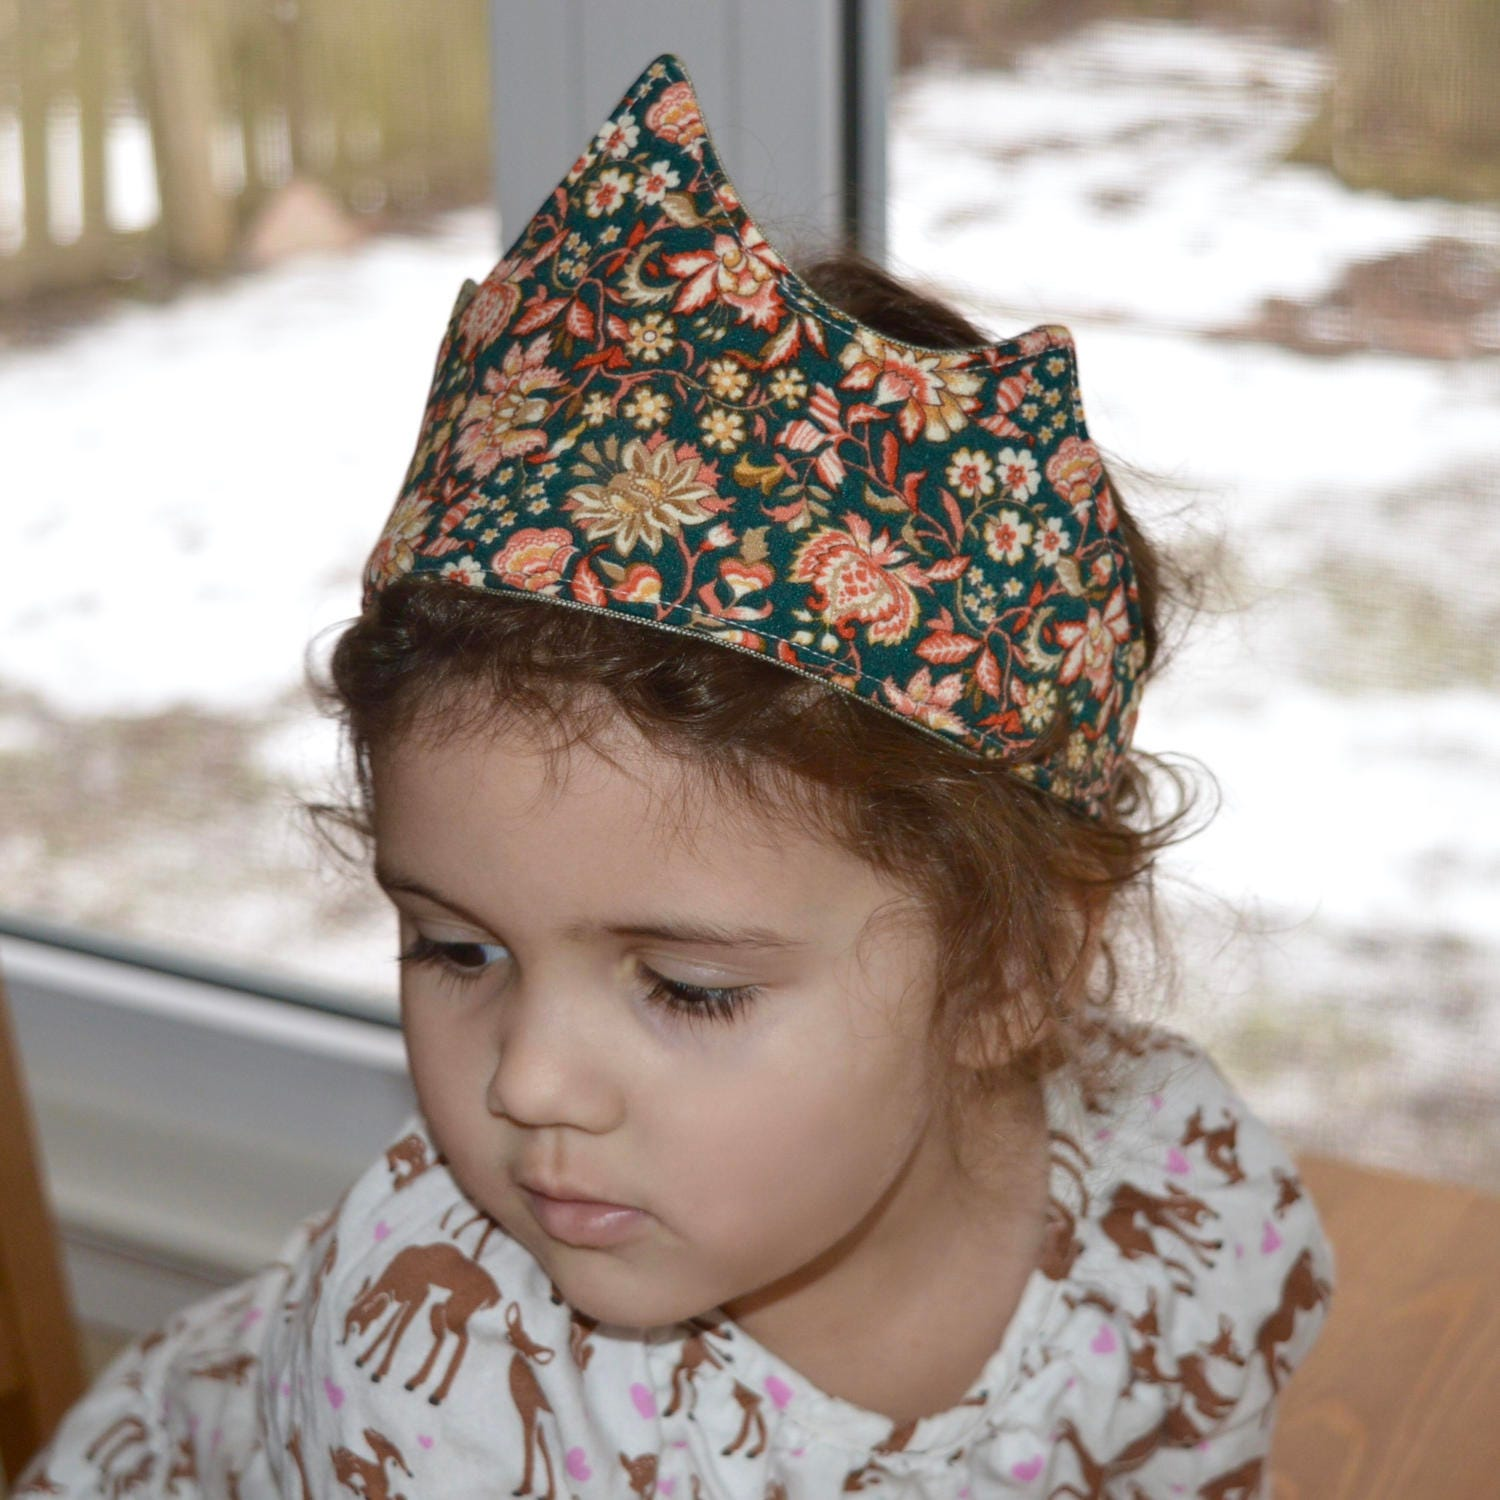 Hairstyles With Crown Queen: Fabric Crown Pattern 3 Unique Styles-Queen King Princess